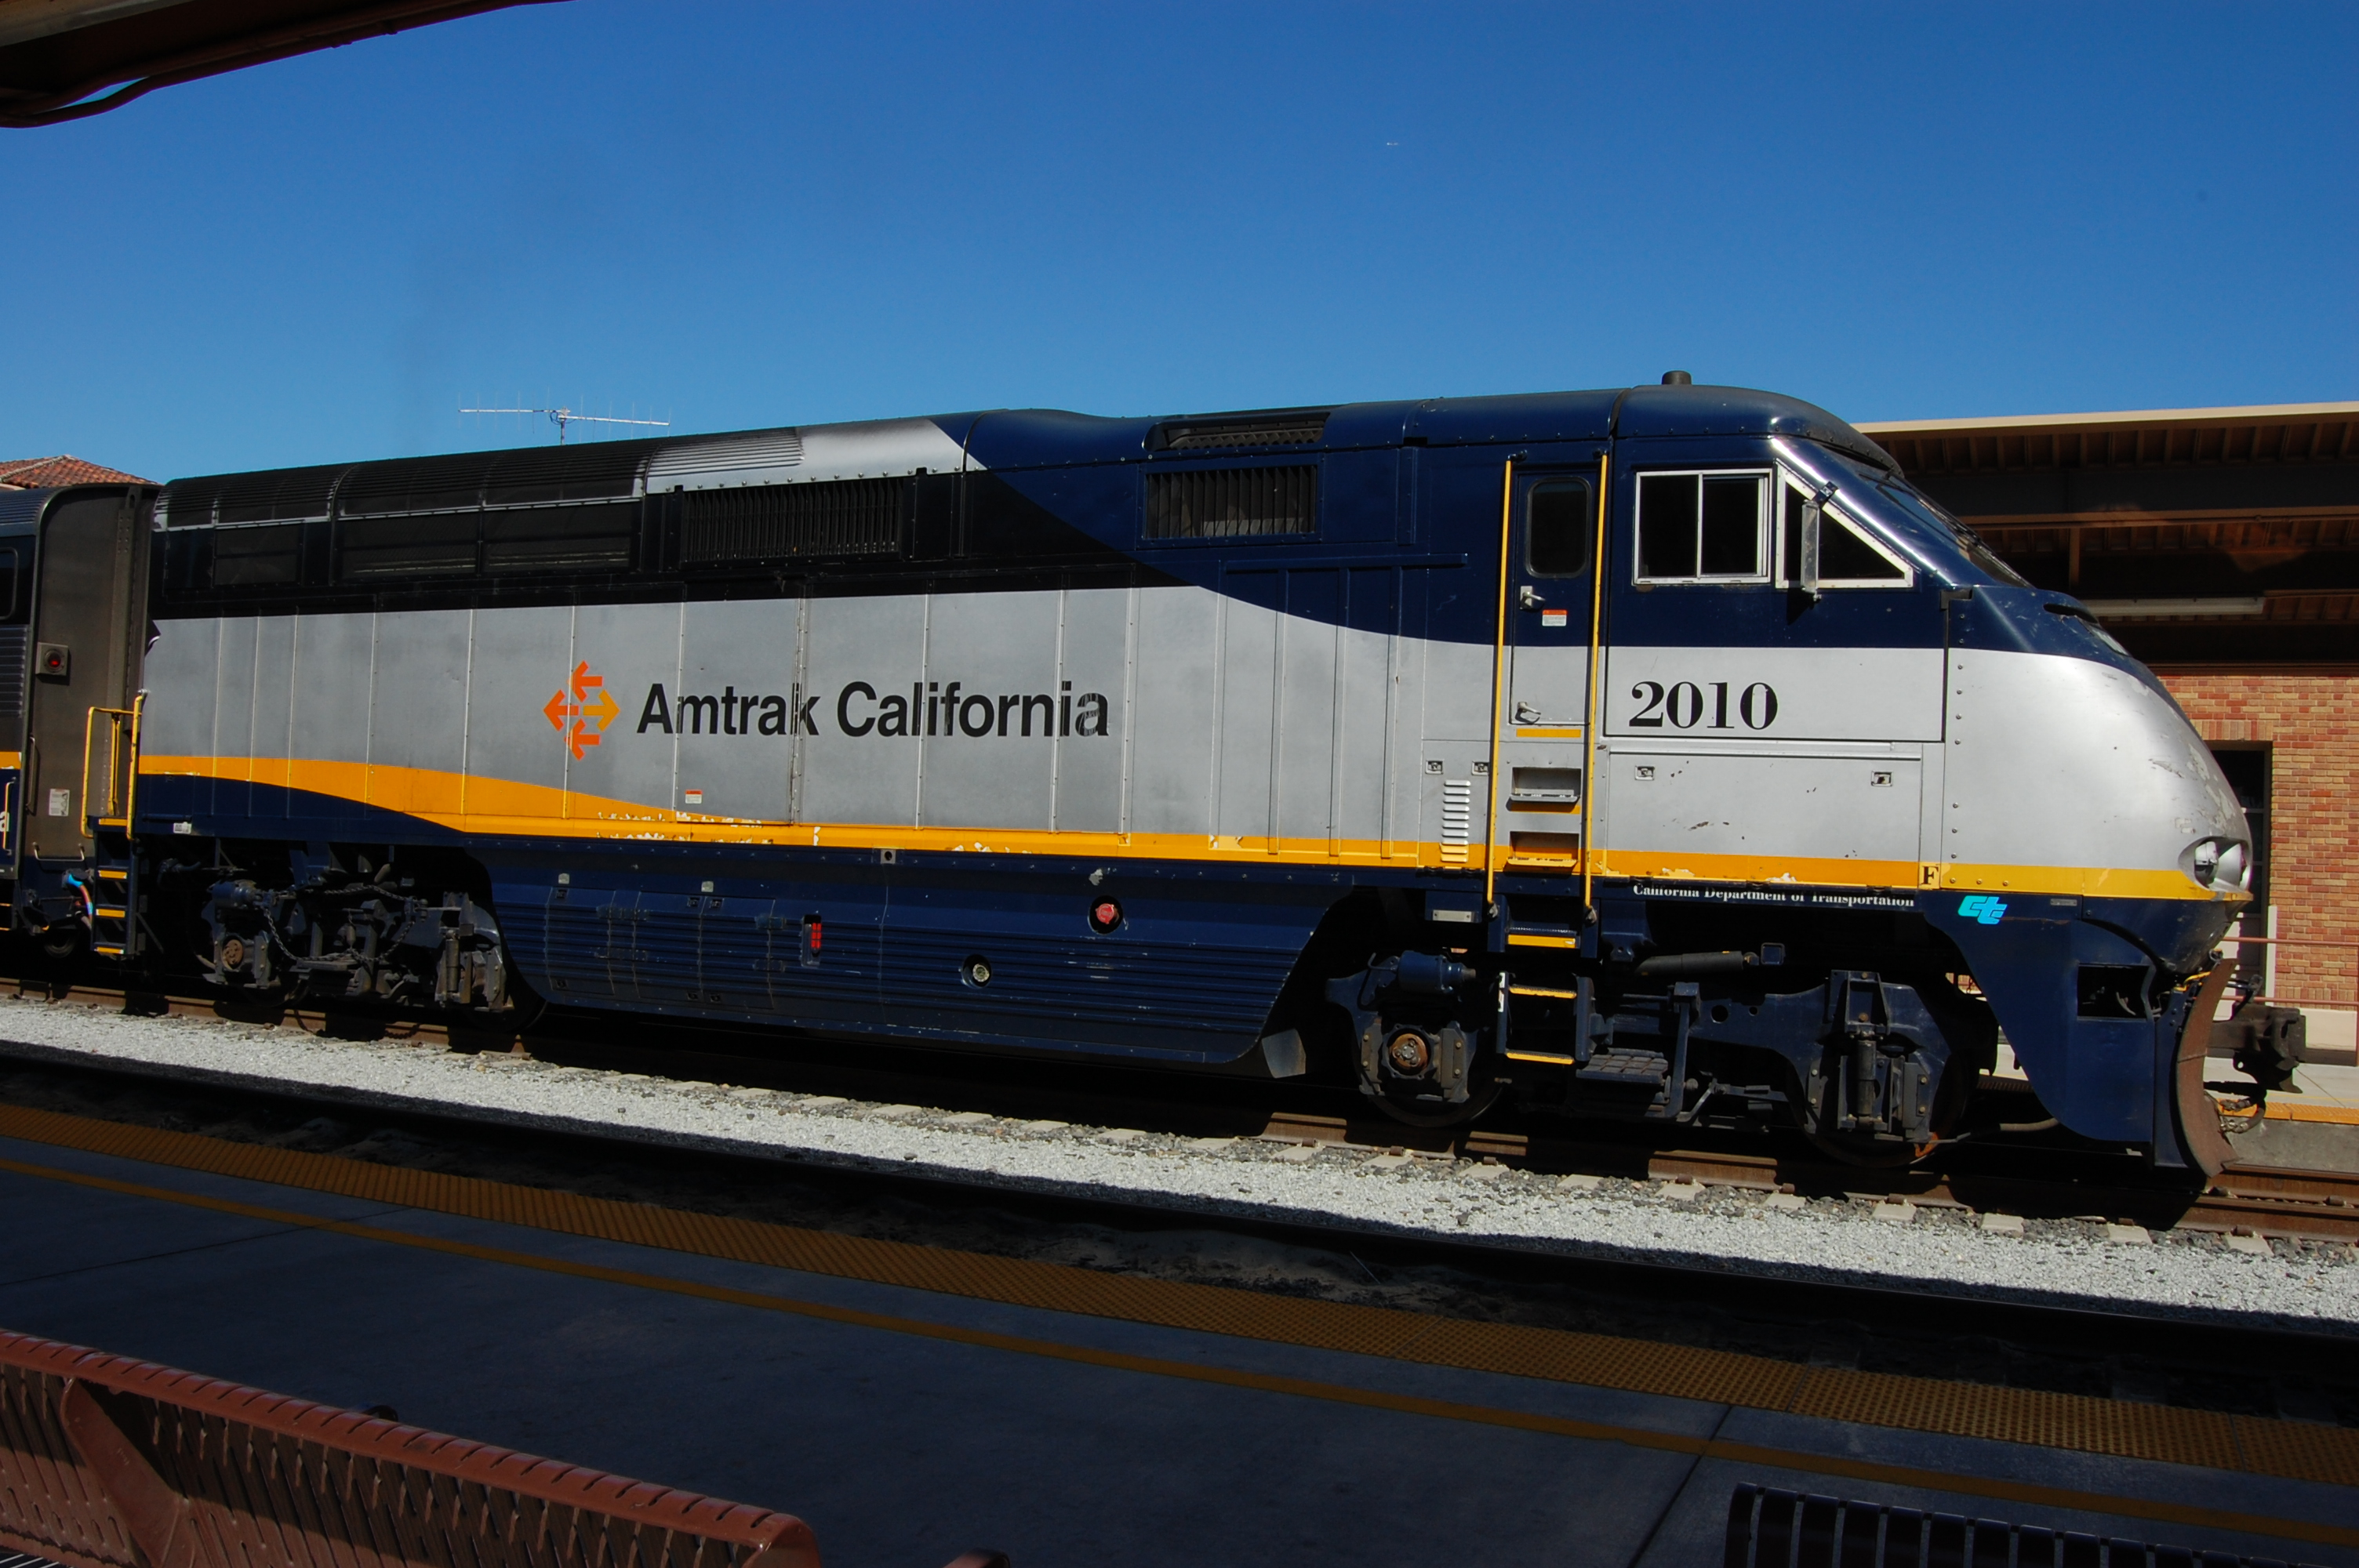 Amtrak trains involved in four fatal crashes in two ... - CNN